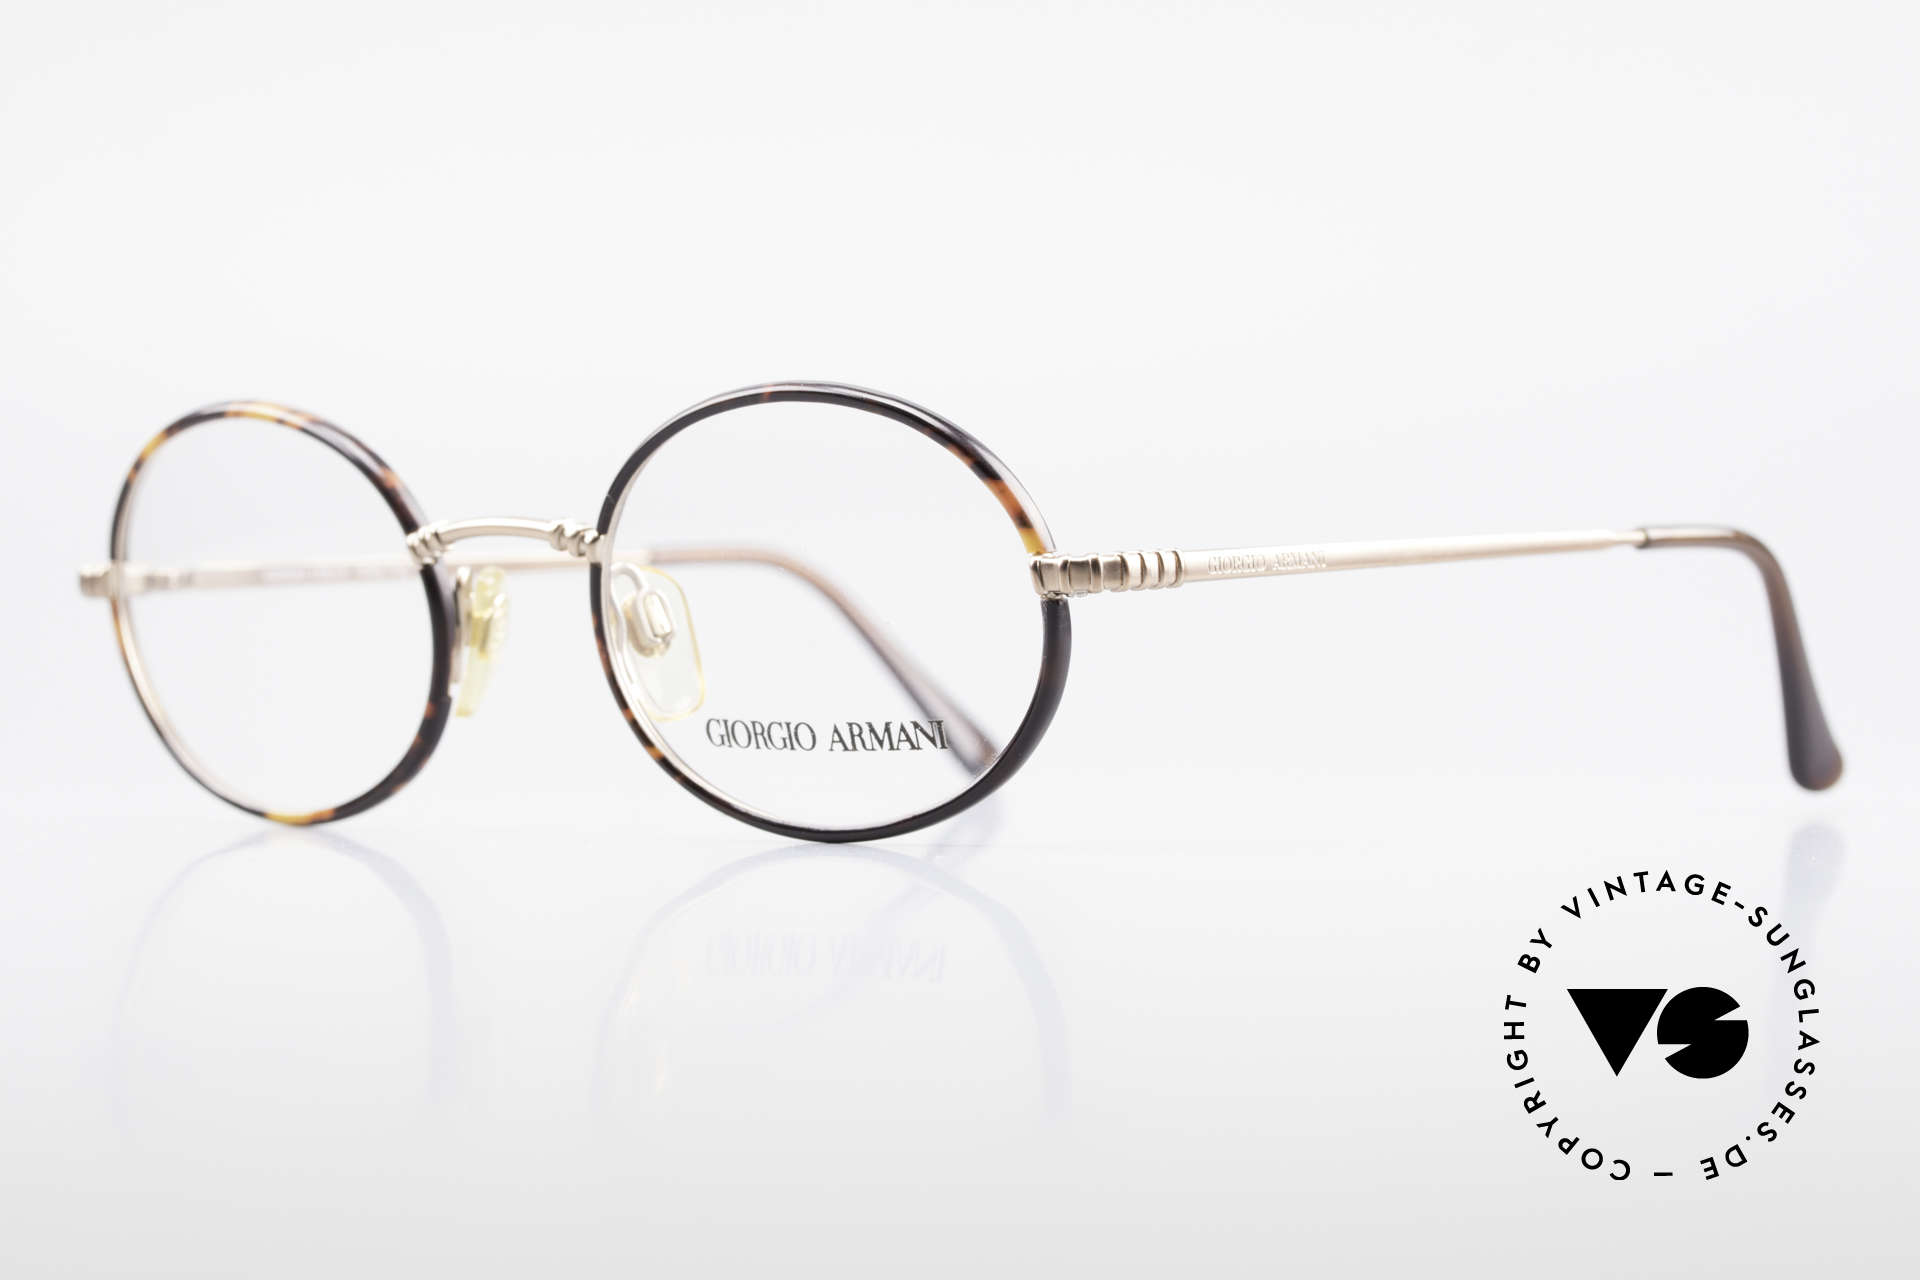 Giorgio Armani 223 Oval Vintage 90's Eyeglasses, copper finished frame + chestnut-brown windsor rings, Made for Men and Women